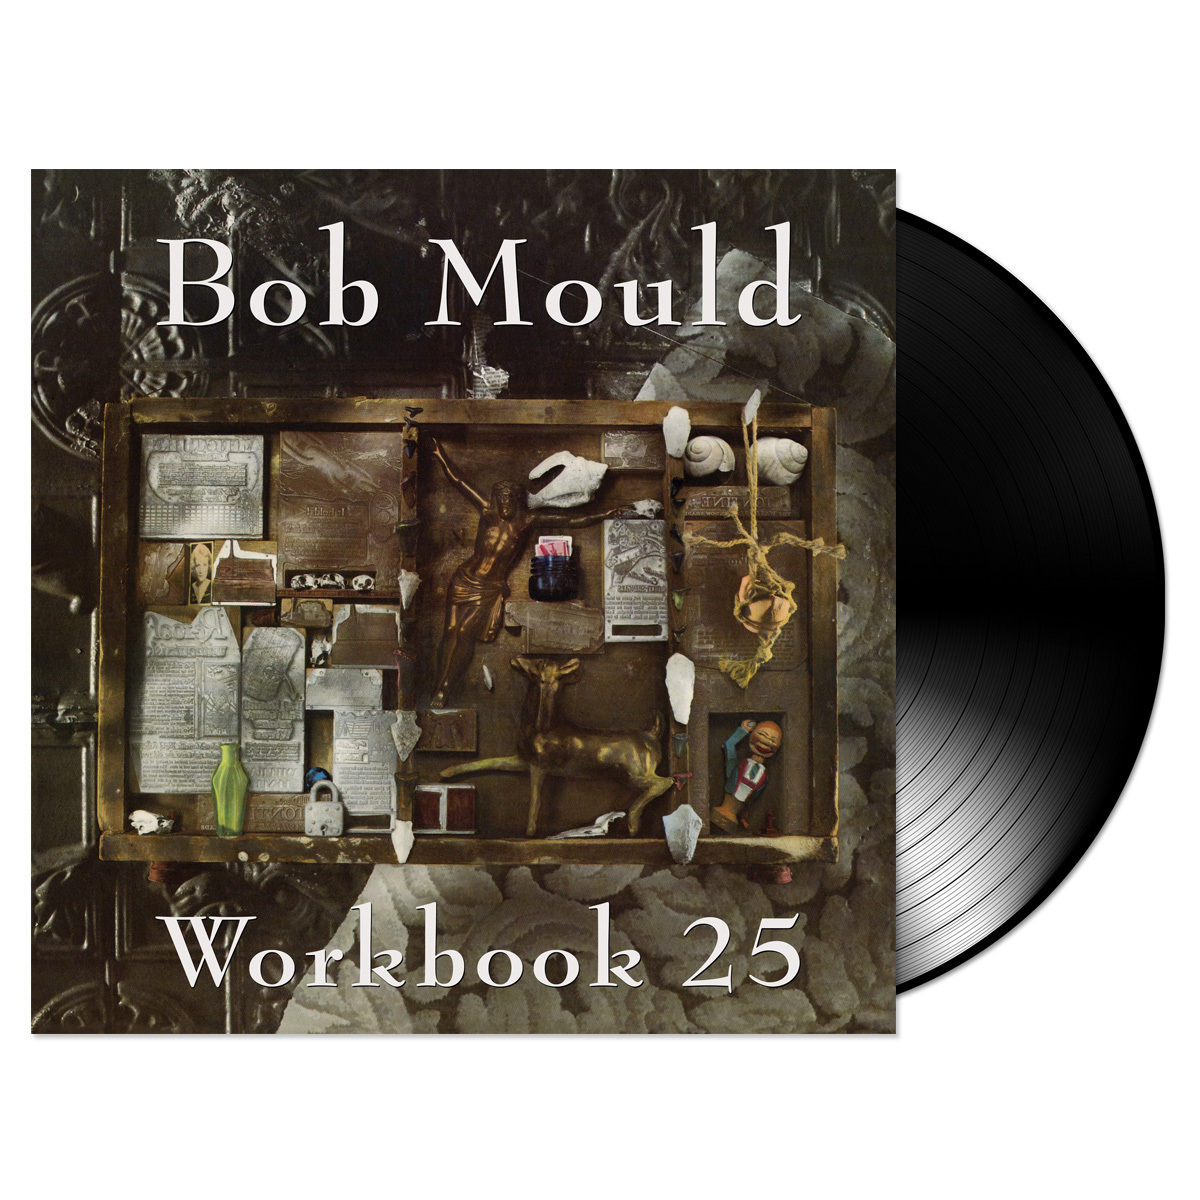 Bob Mould - Workbook LP